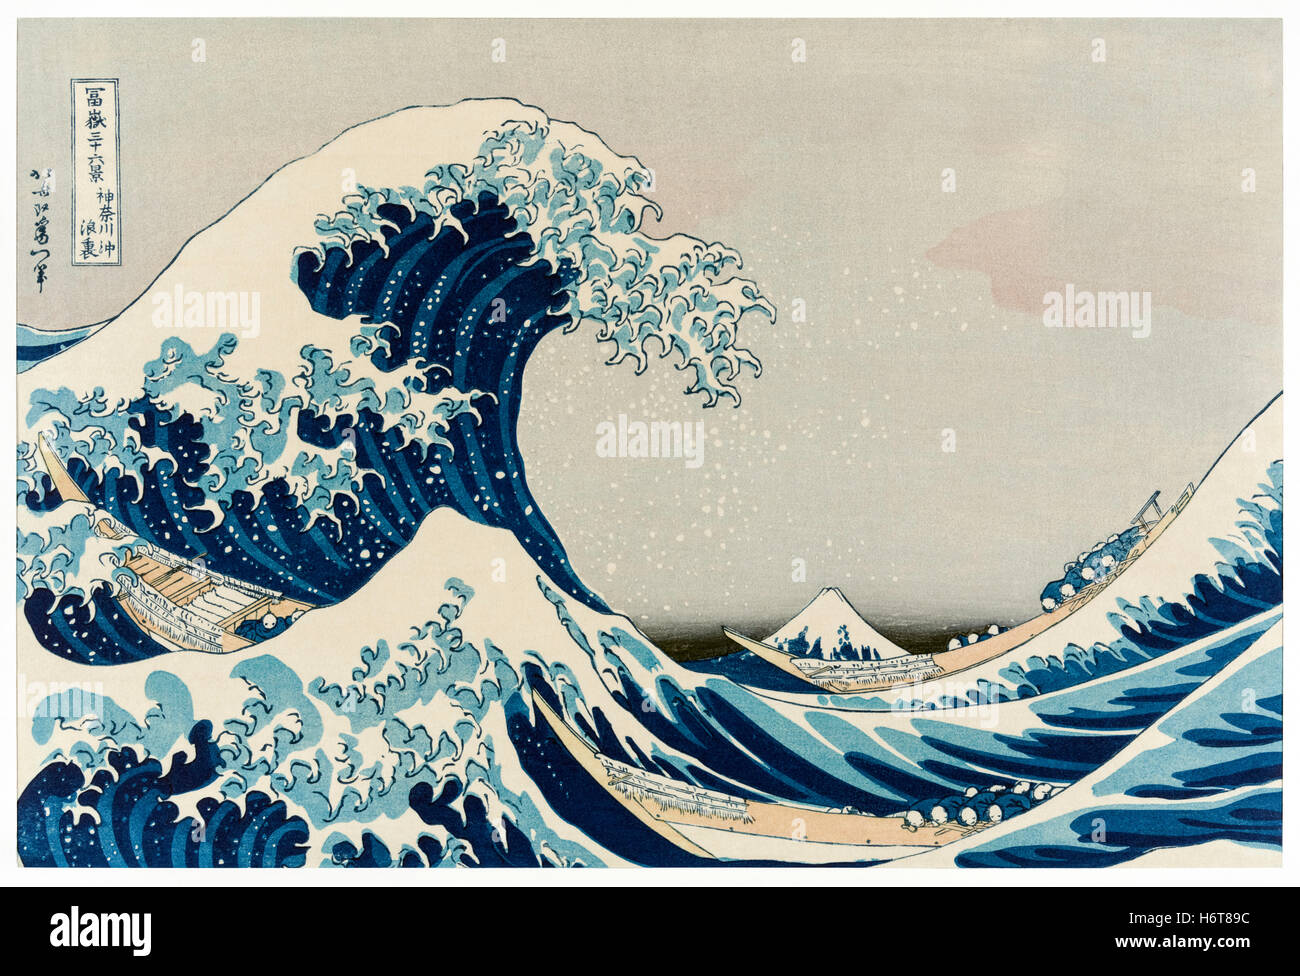 The great wave off kanagawa wood block print by katsushika hokusai 1760 1849 a japanese artist in the edo period one of 36 prints showing views of